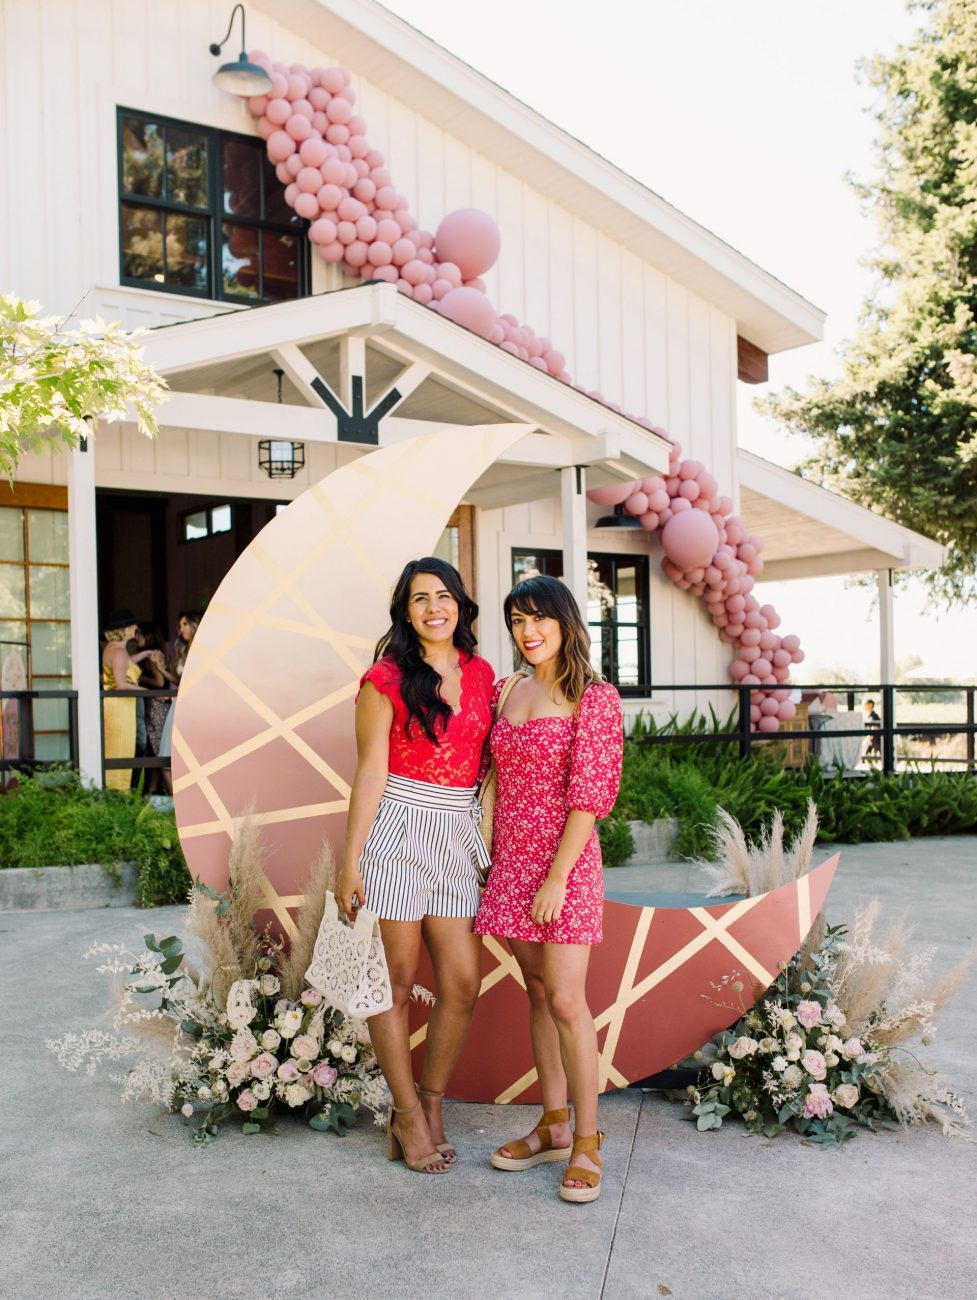 Park Winters Summerland 2019 | Summer Pool Party Inspiration | Fashion Blogger Outfit | Installation Floral Balloon Garland Design | SarahMichiko.com